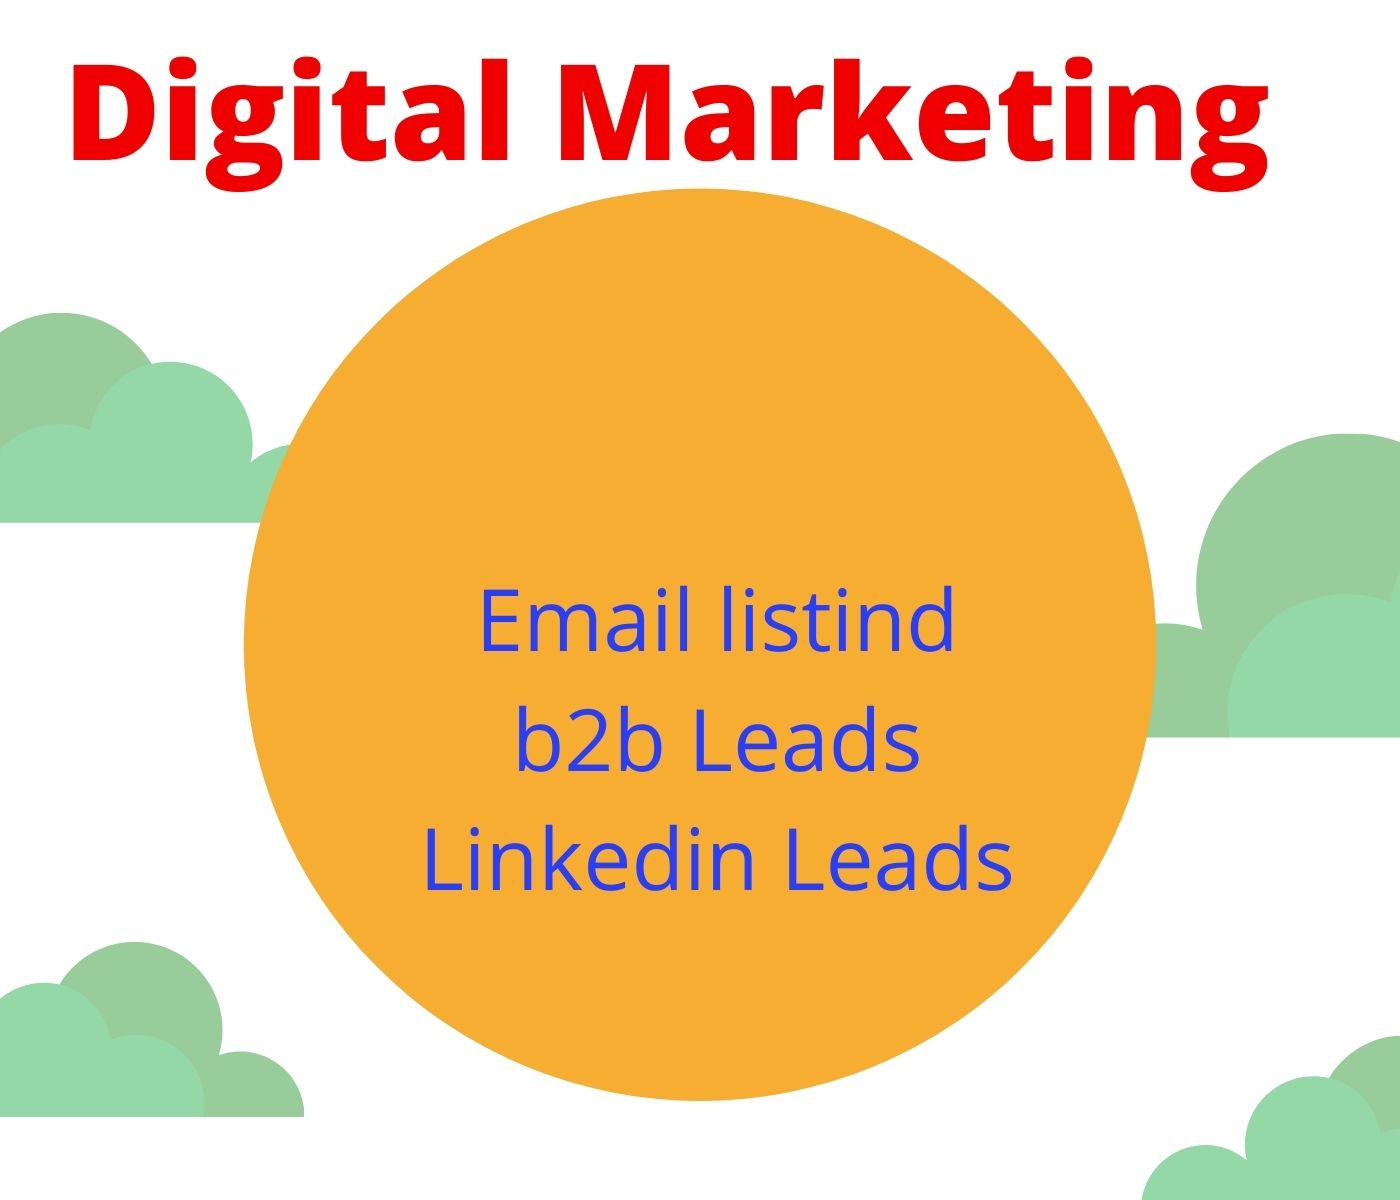 I will collect USA based niche targeted email list verified